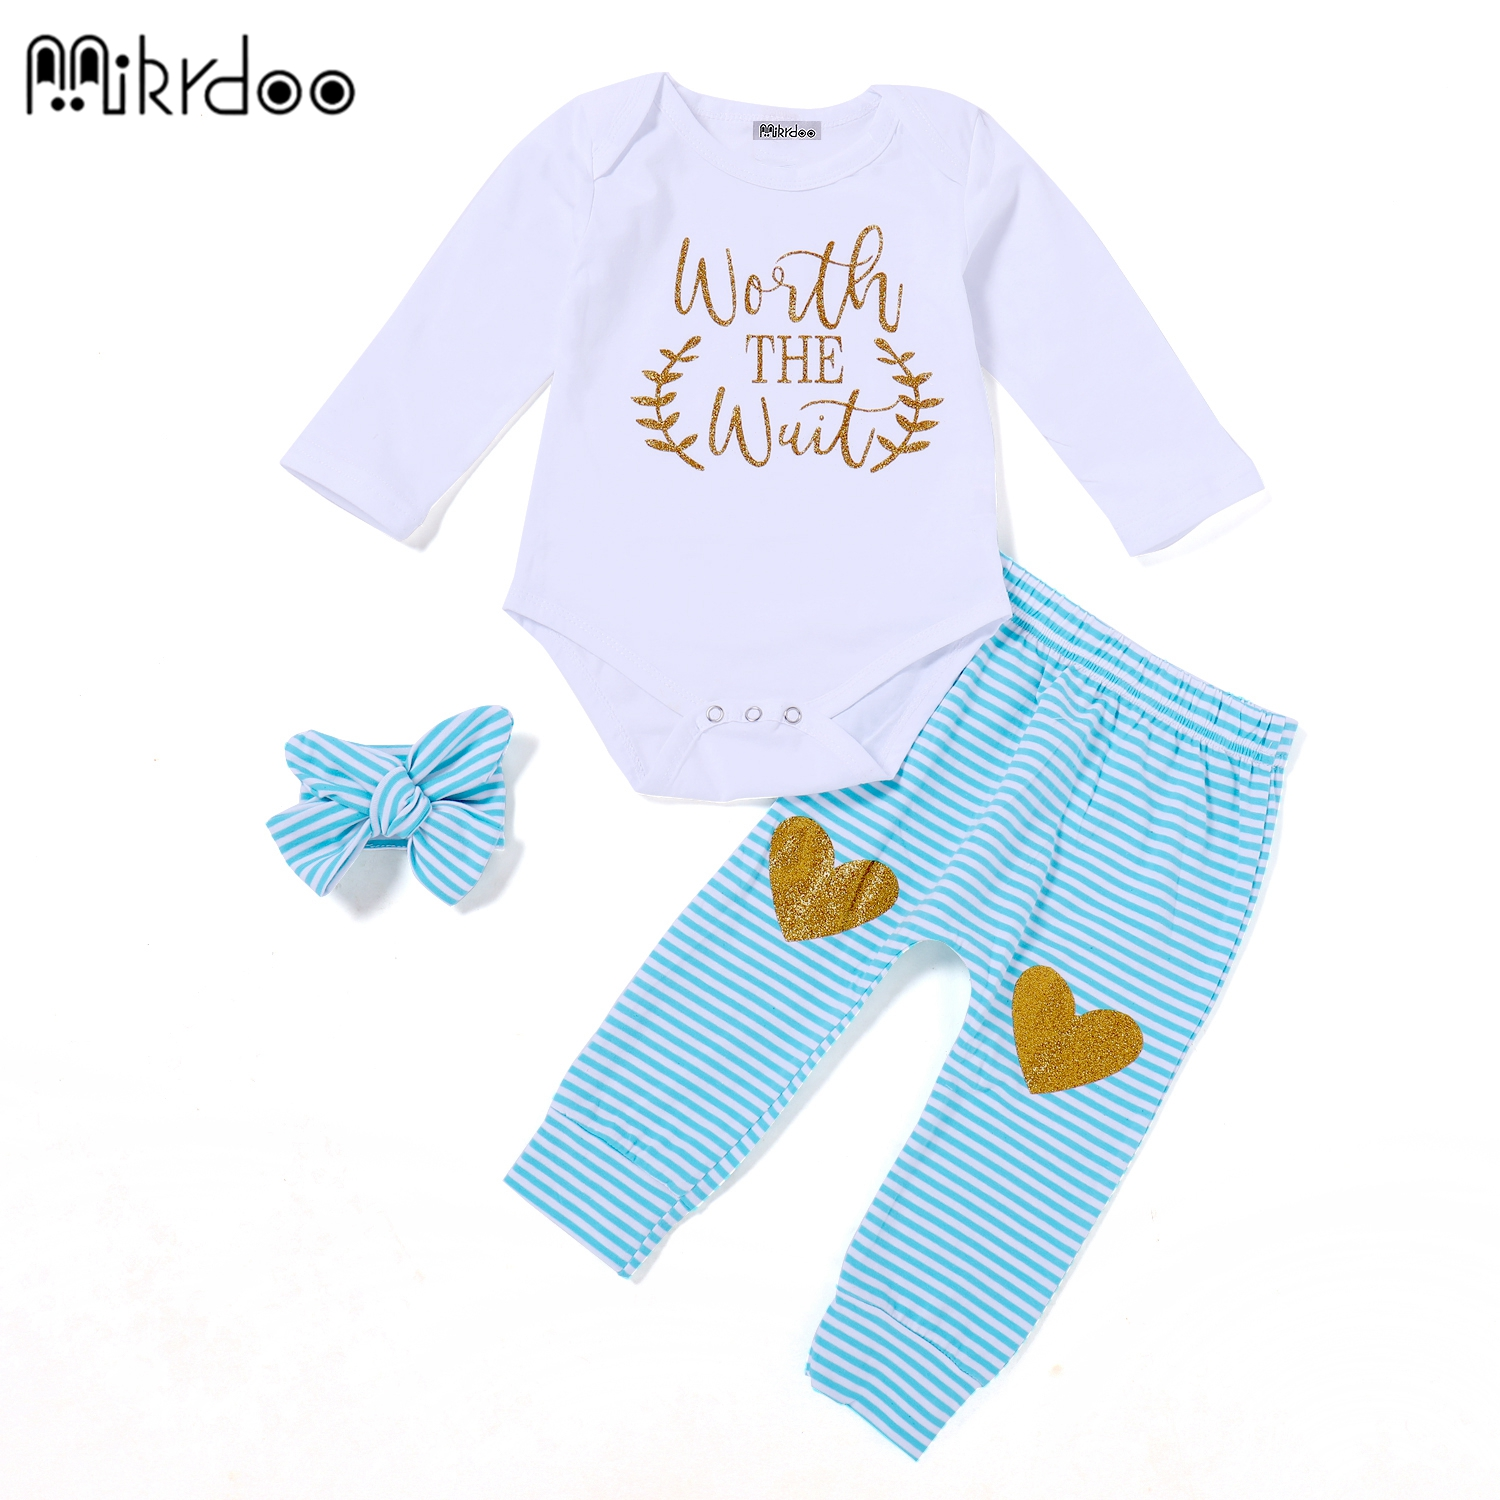 HOT SALE Newborn Baby girl Clothes long Sleeve foil printing shirt ,checks pattern Pant +bow headband 3PCS Toddler Kids Clothi